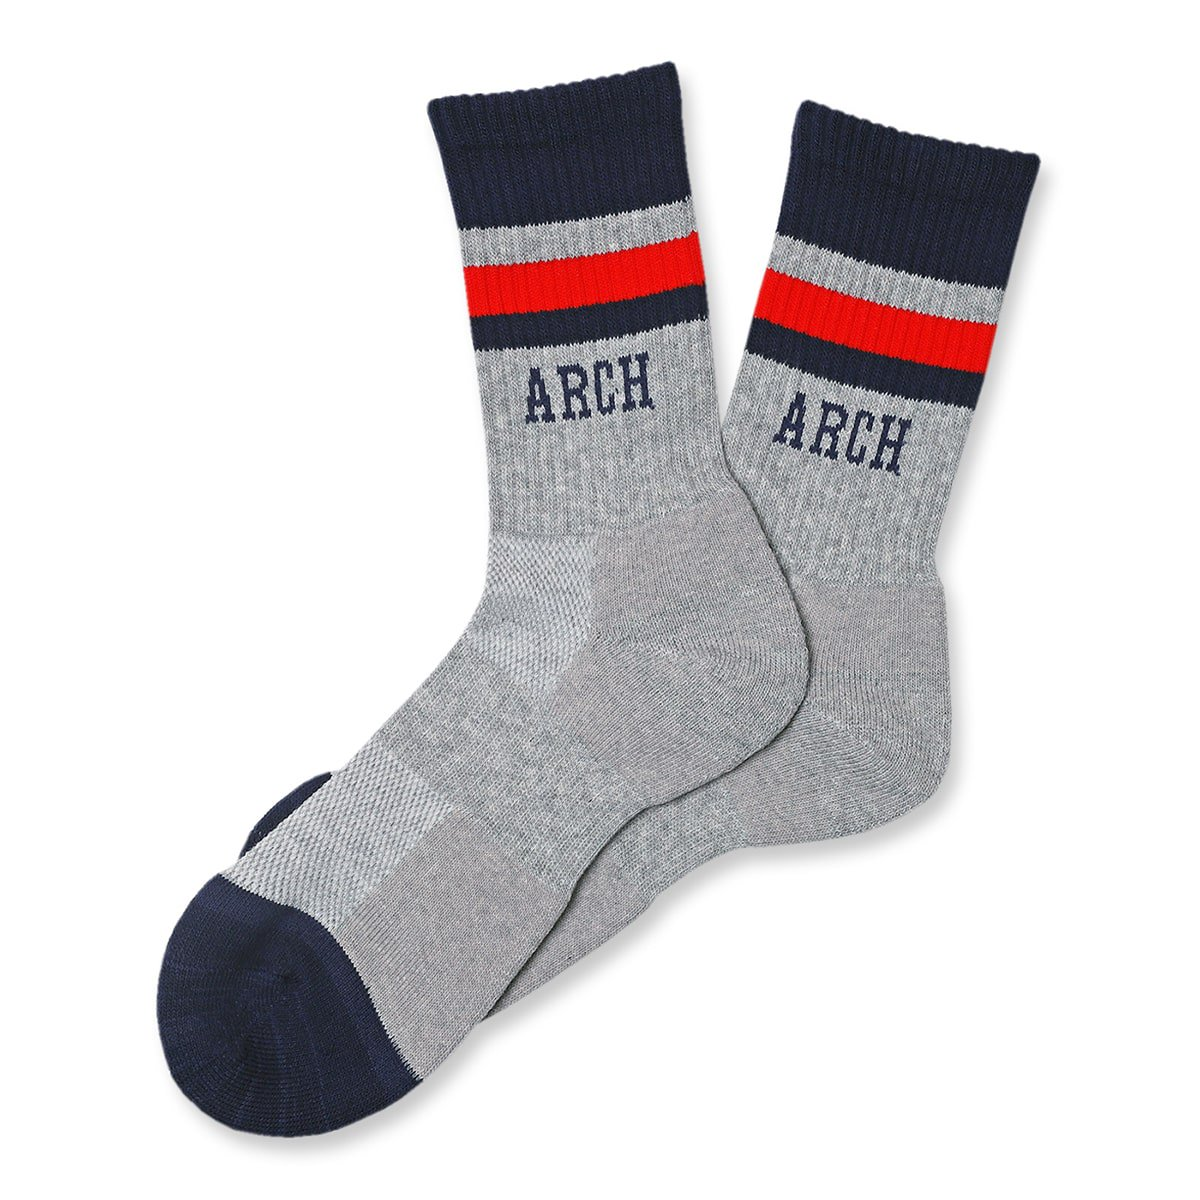 TL sport crew mid. socks【gray/navy】